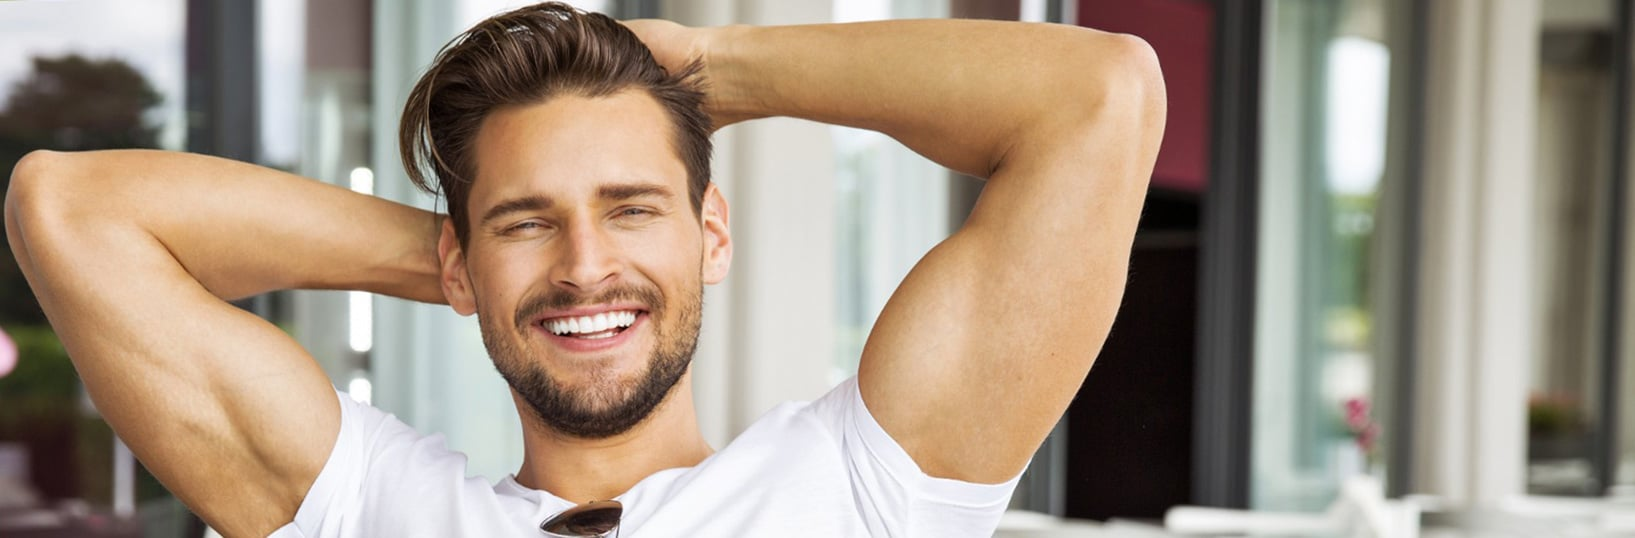 Mens barber cutting and styling